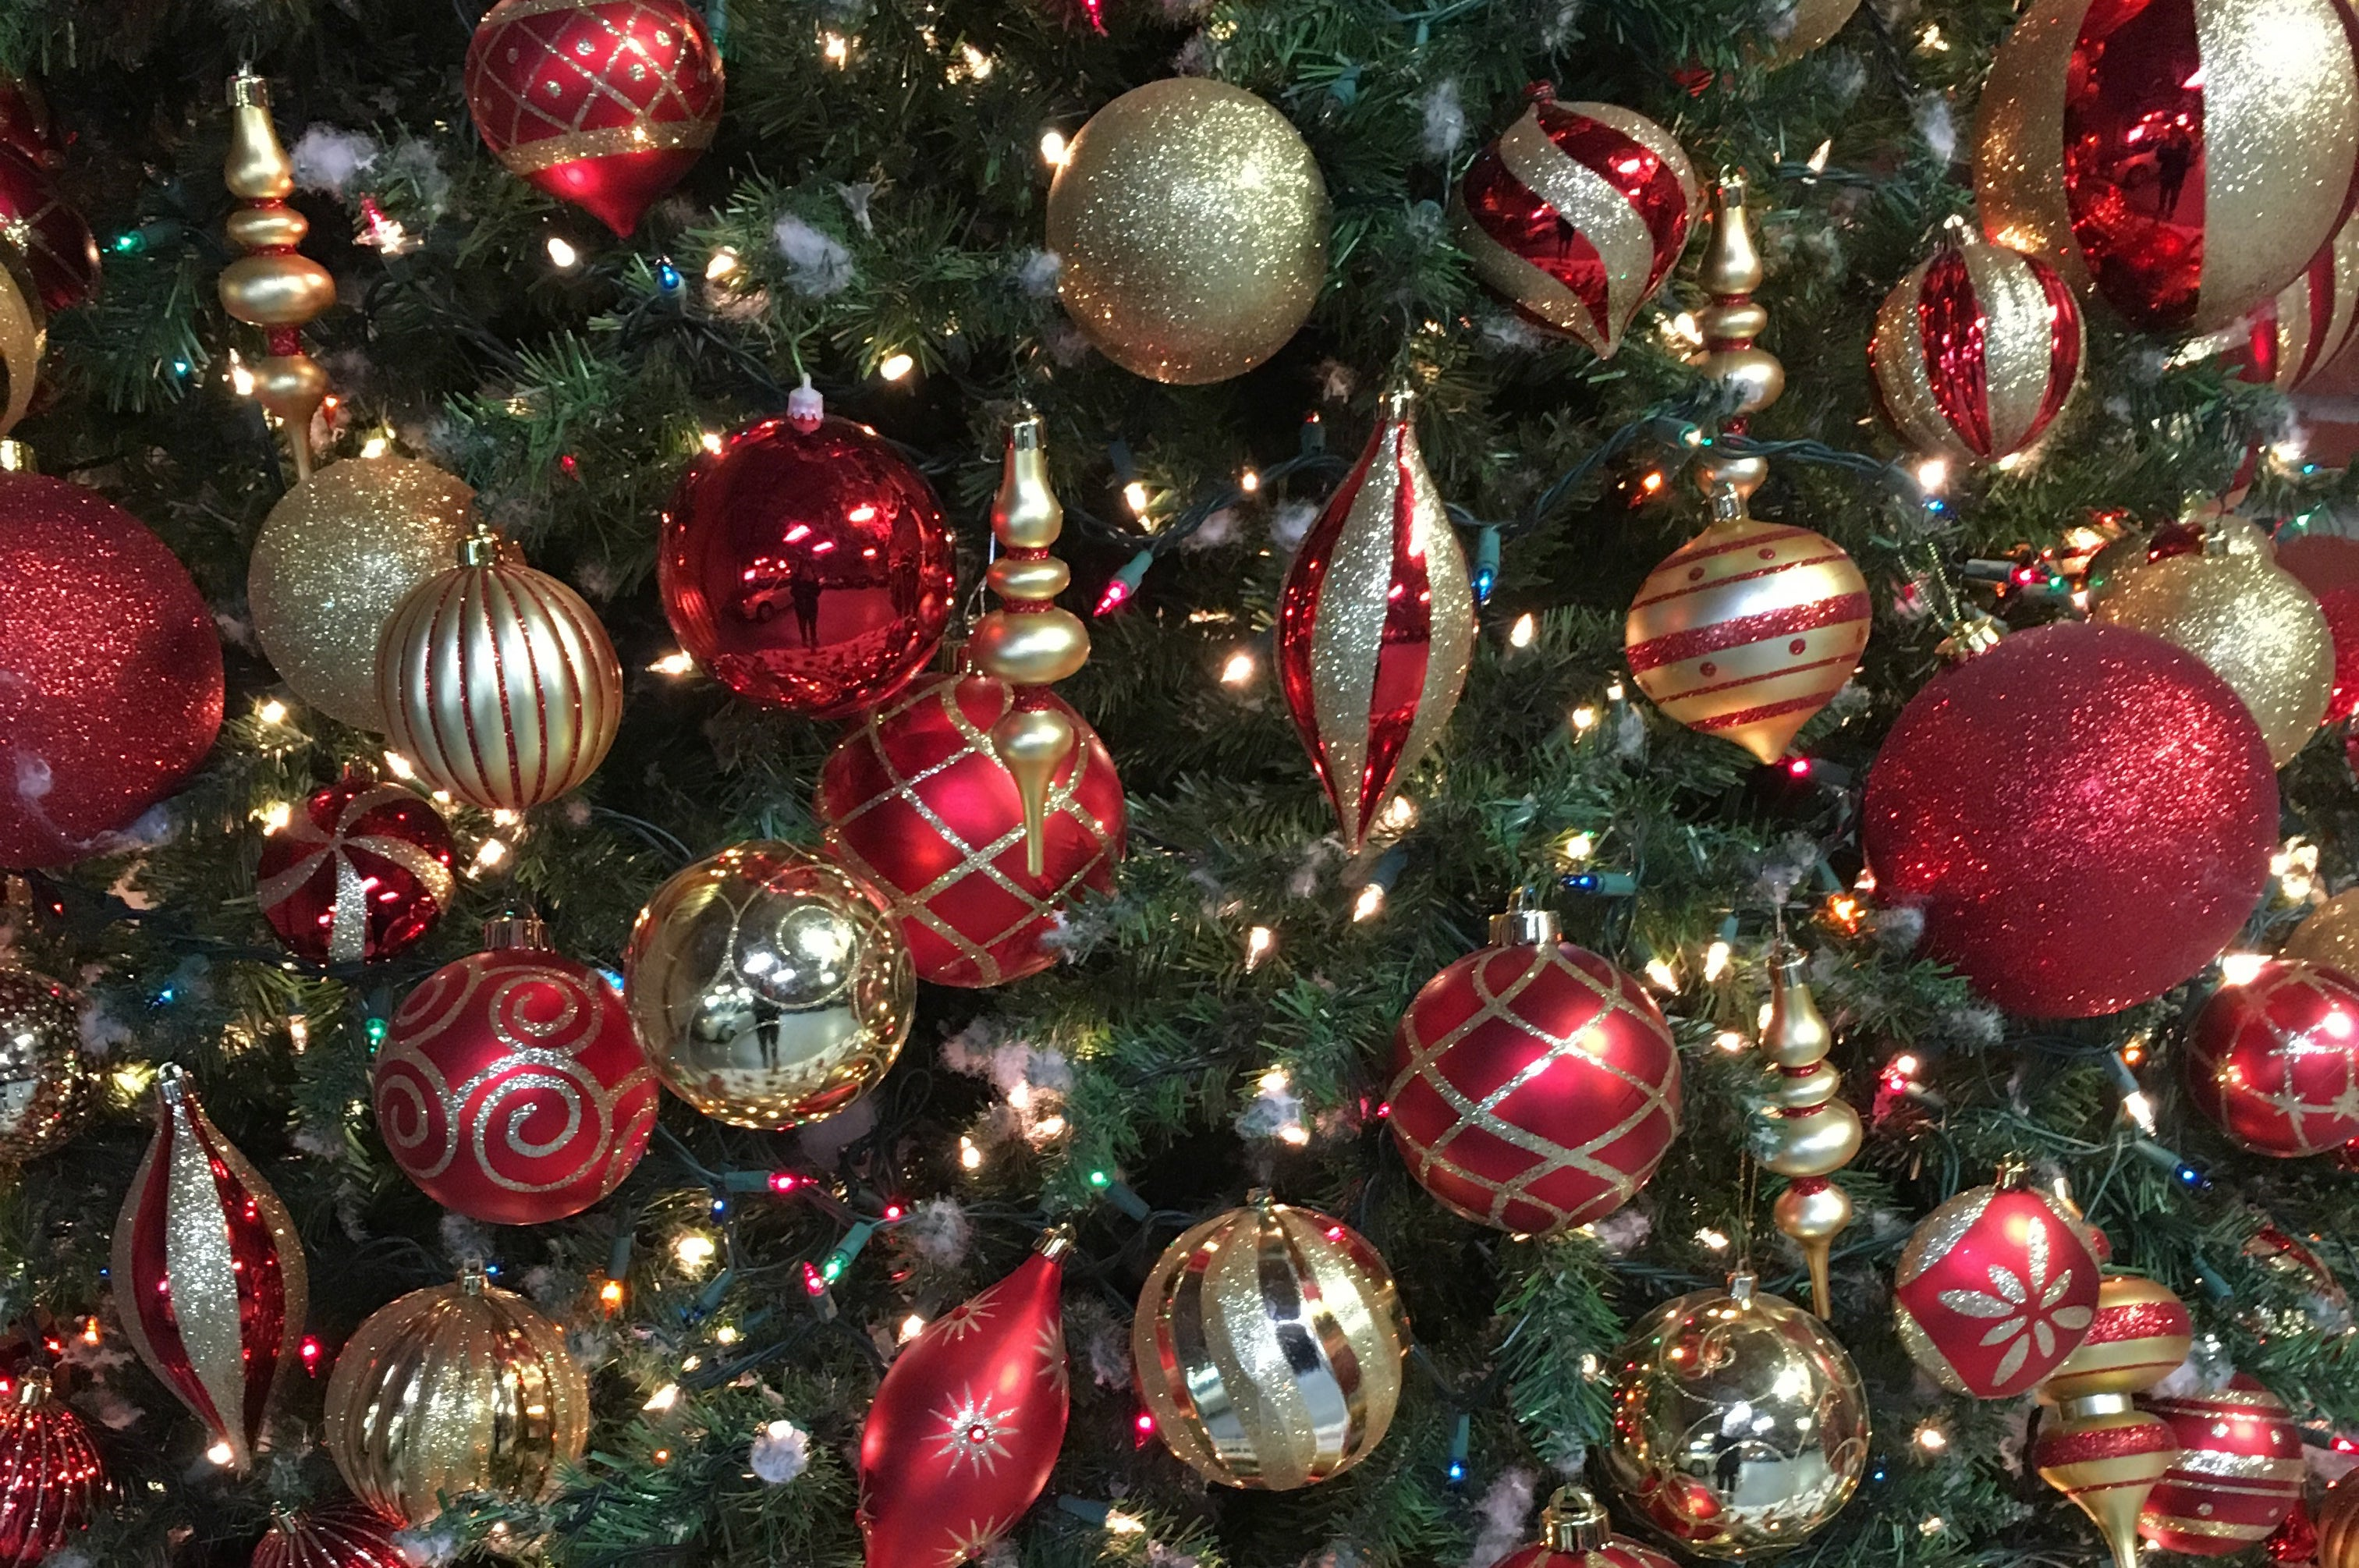 7 tips to make your holiday photos sparkle macworld